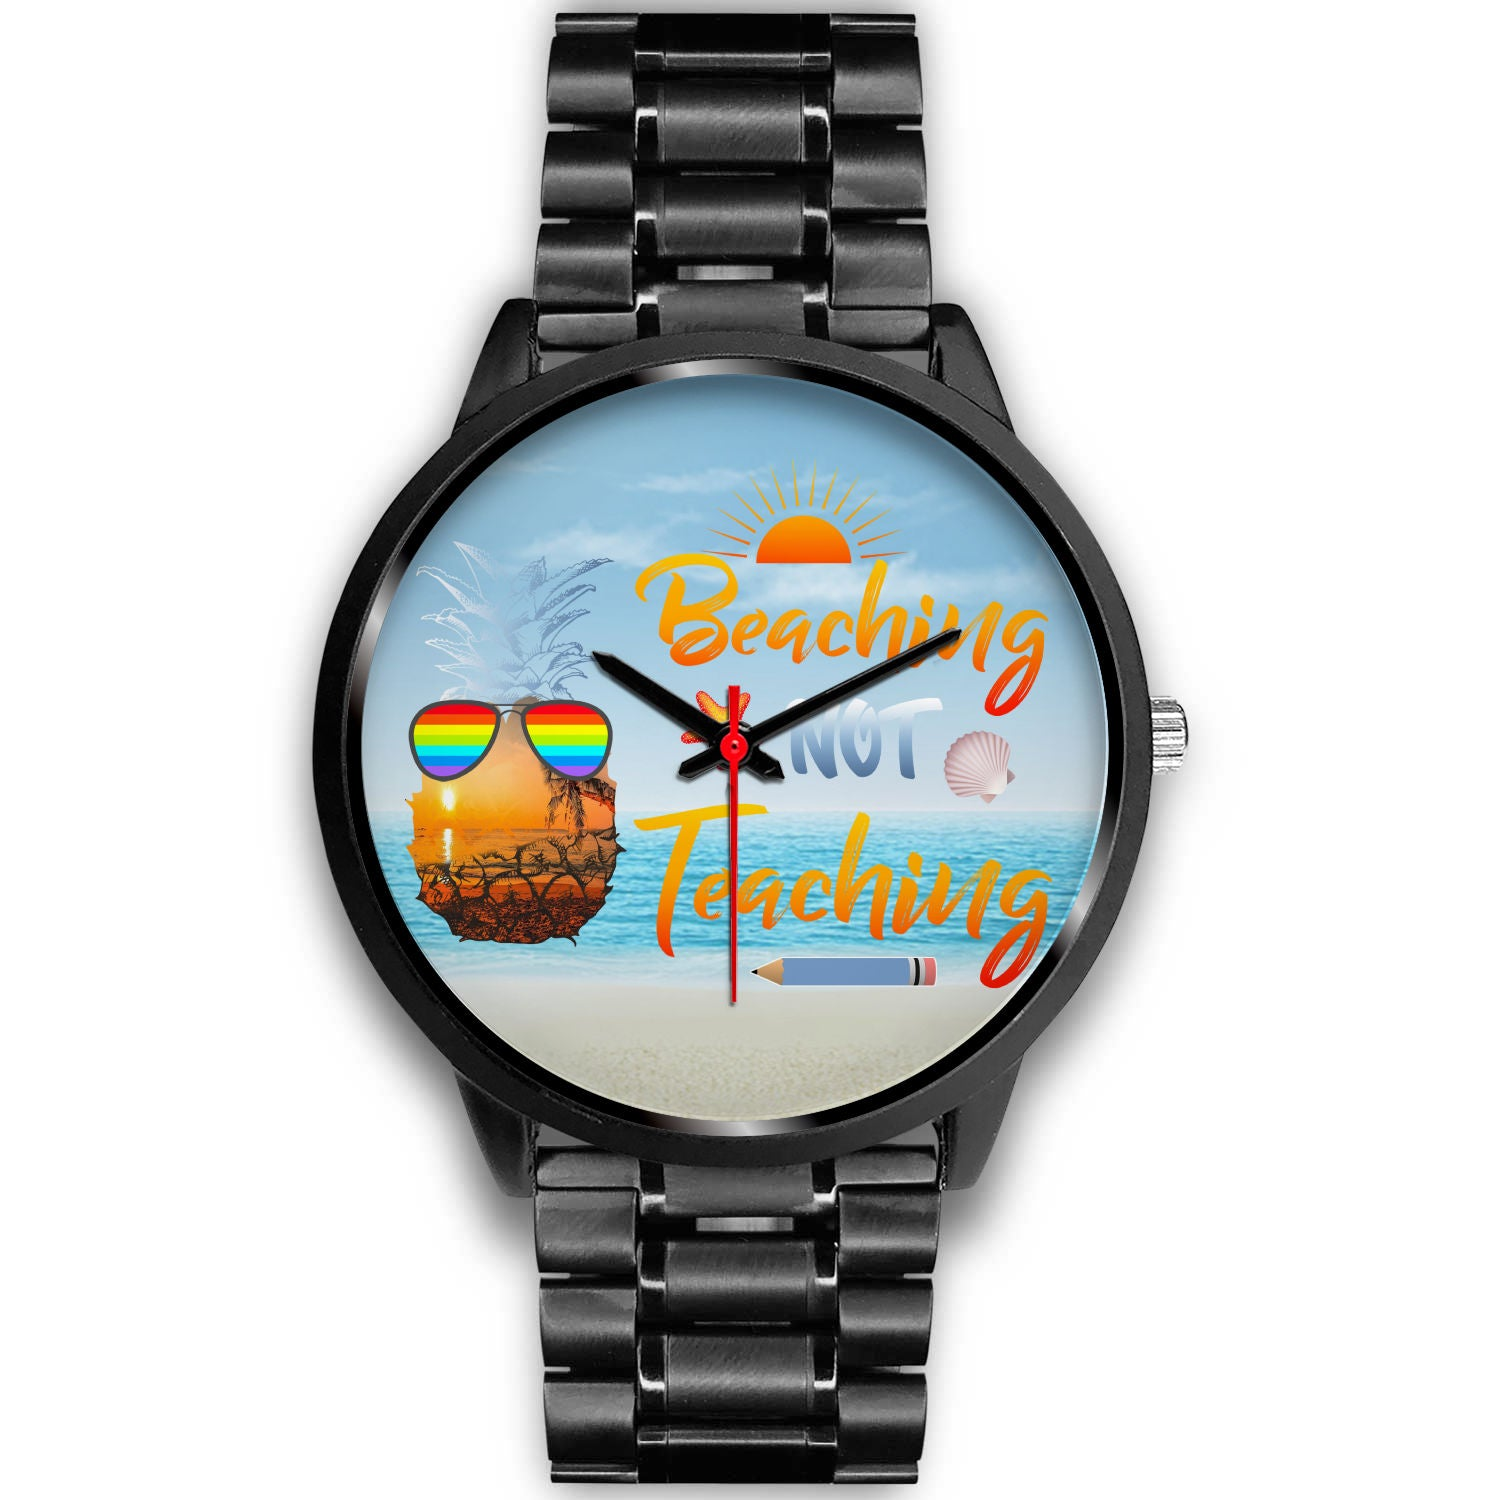 VIRA summer black stainless steel watch for awesome teachers & papaprofessionals